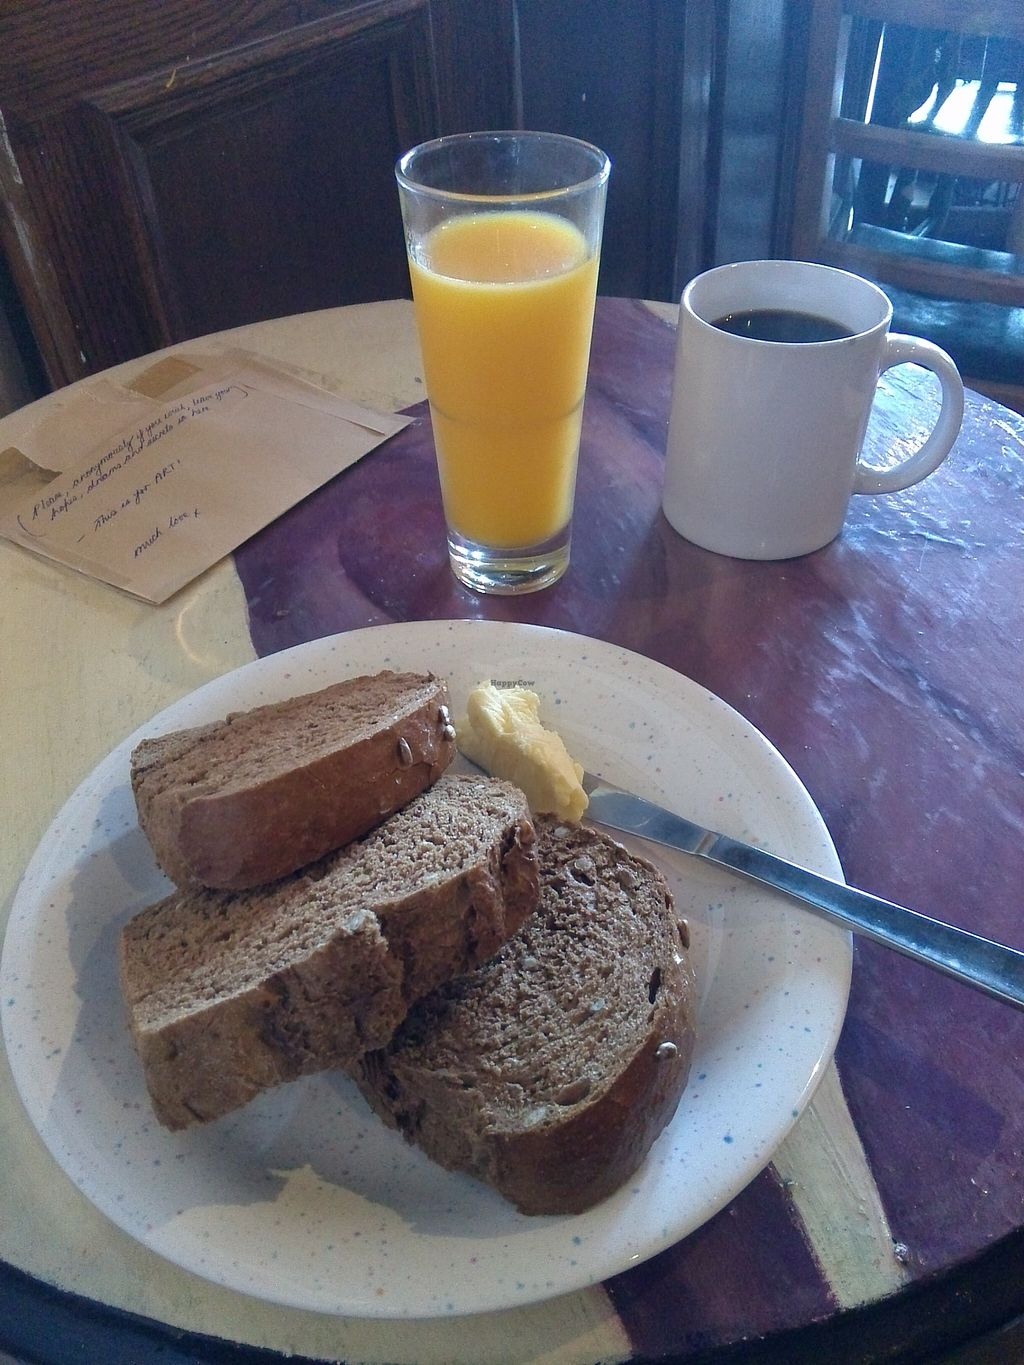 """Photo of The Forest Cafe  by <a href=""""/members/profile/Ryecatcher"""">Ryecatcher</a> <br/>breakfast deal <br/> September 16, 2015  - <a href='/contact/abuse/image/34384/117996'>Report</a>"""